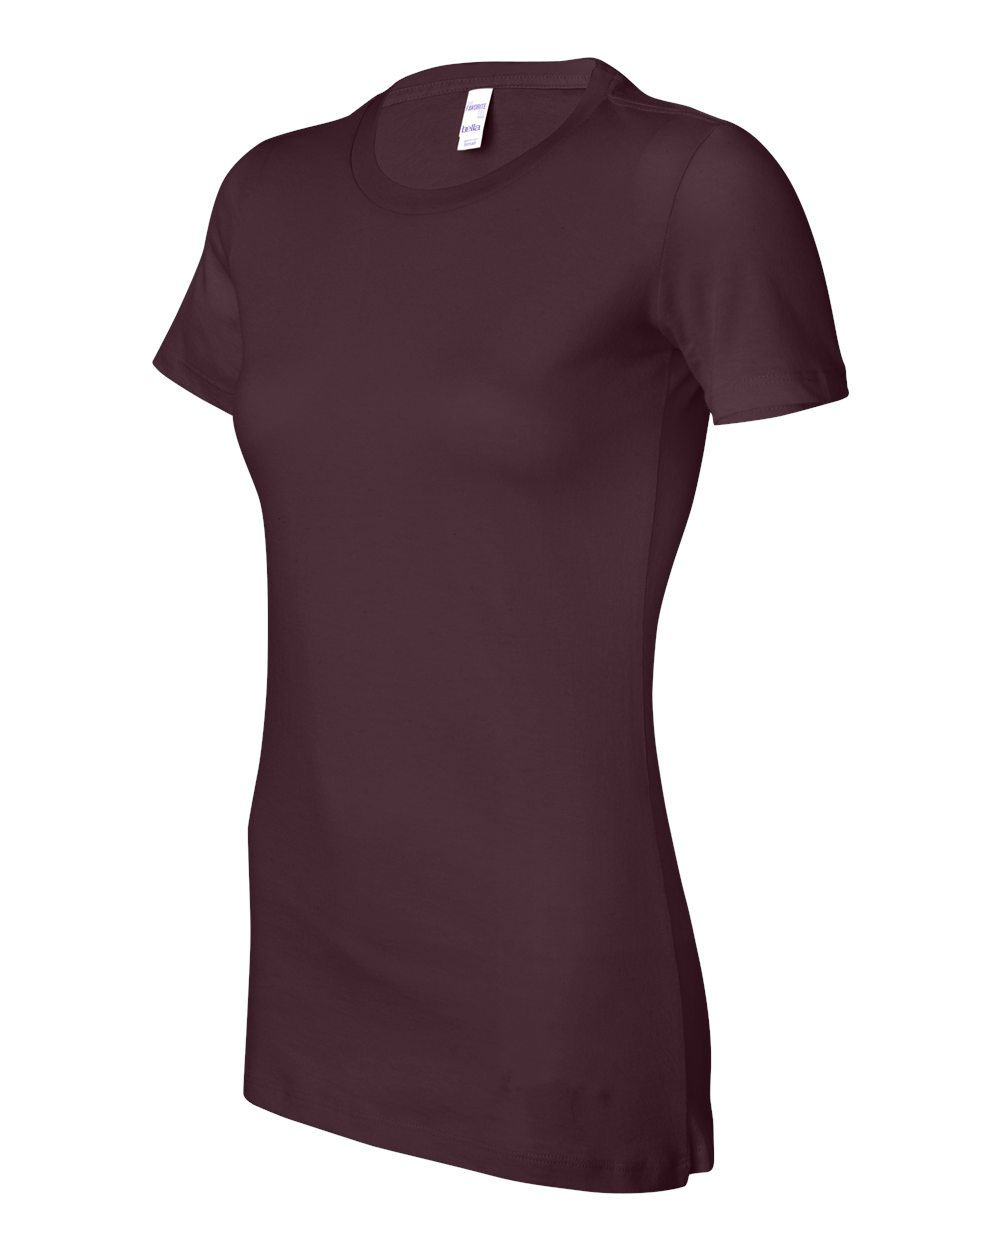 Bella-Canvas-Womens-The-Favorite-T-Shirt-6004-Size-S-2XL thumbnail 130